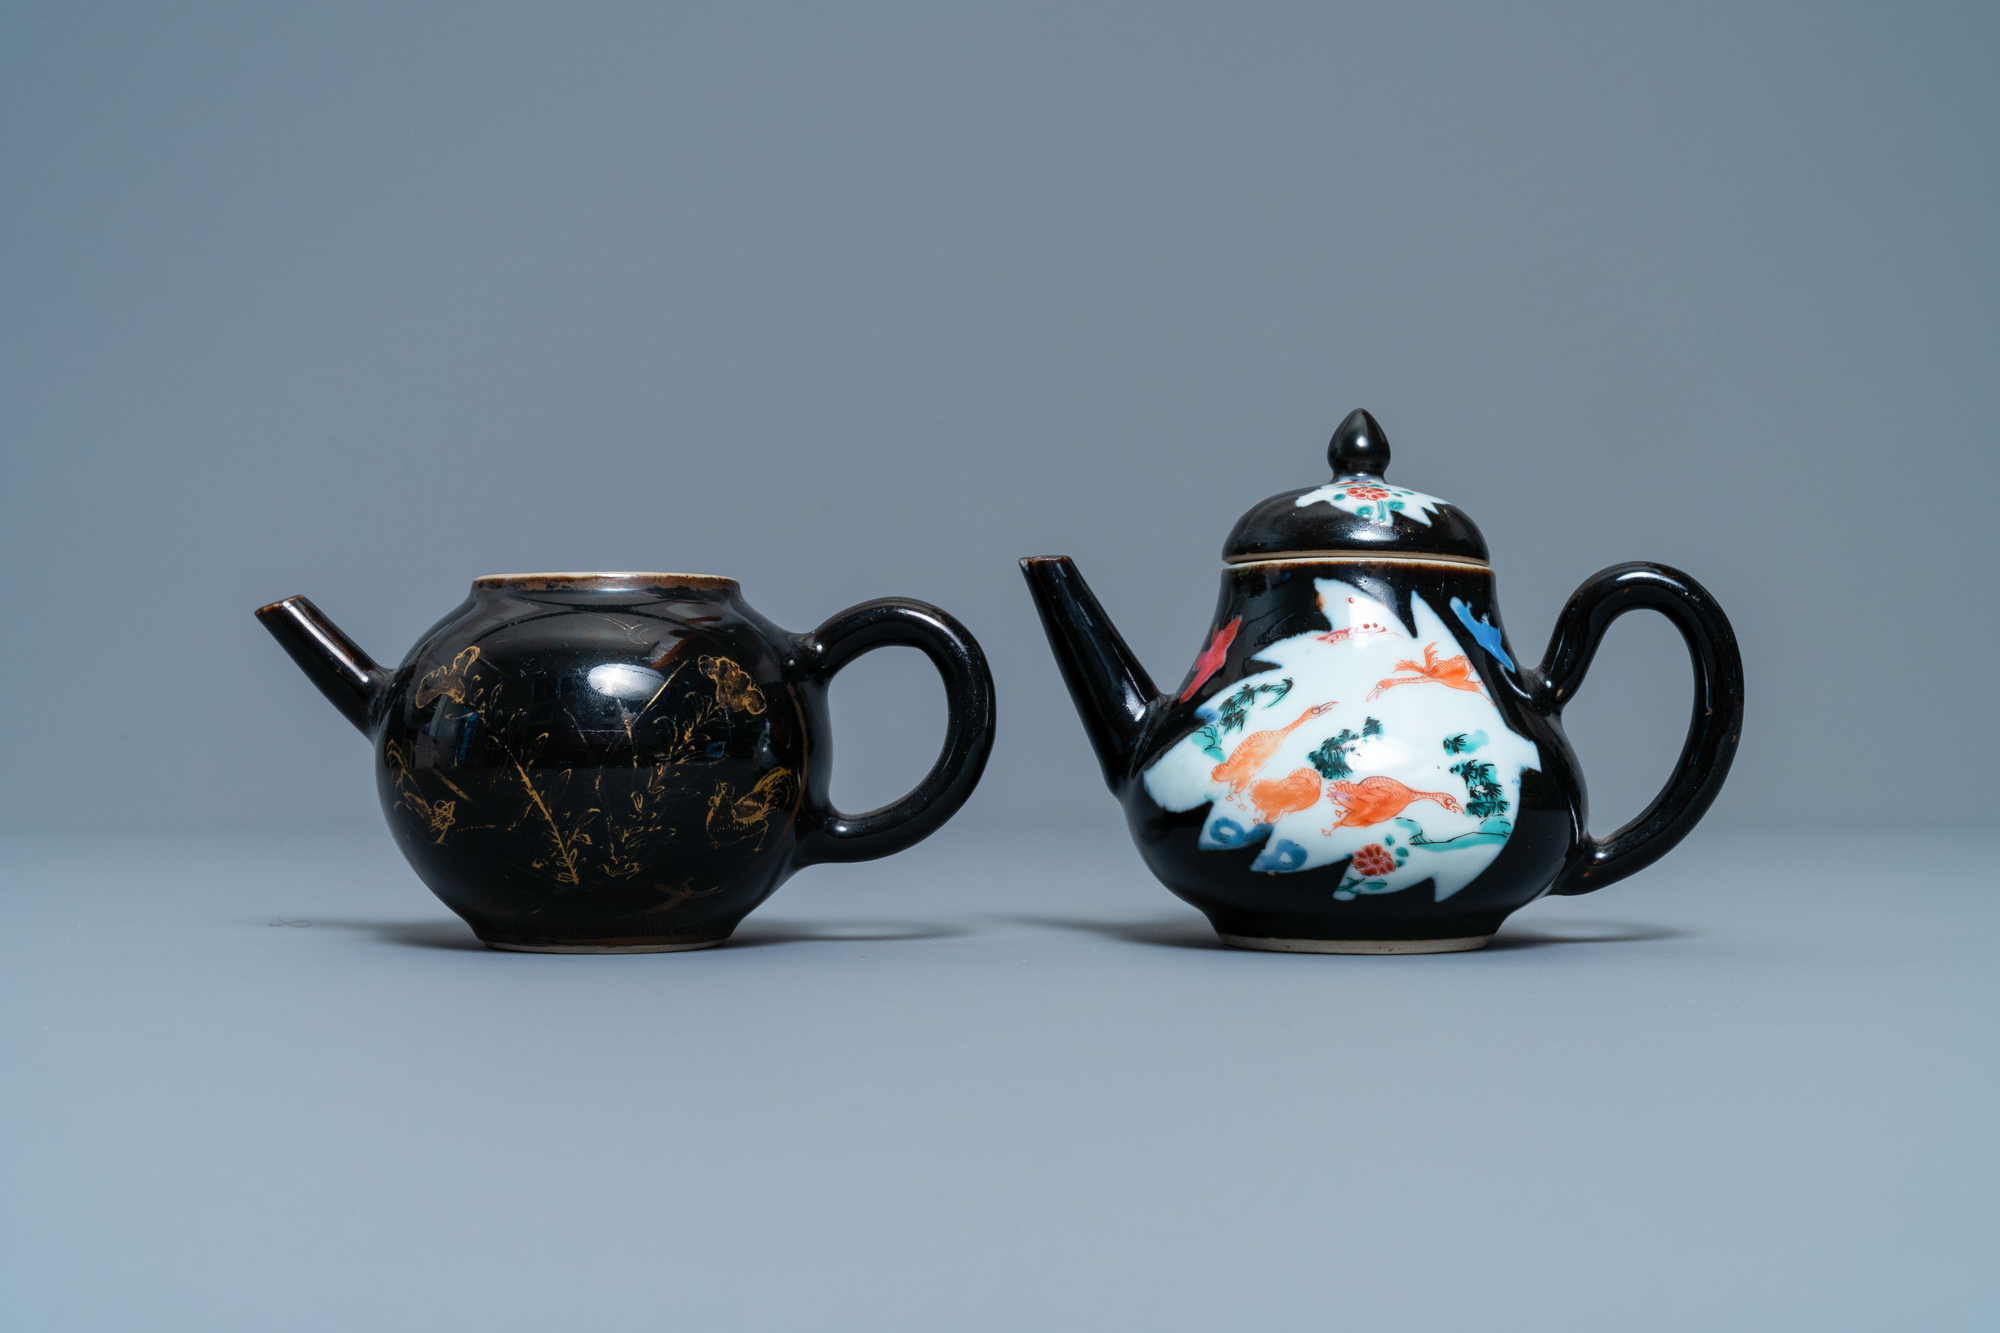 Two Chinese famille noire teapots, a pattipan and two spoon trays, Yongzheng/Qianlong - Image 4 of 9